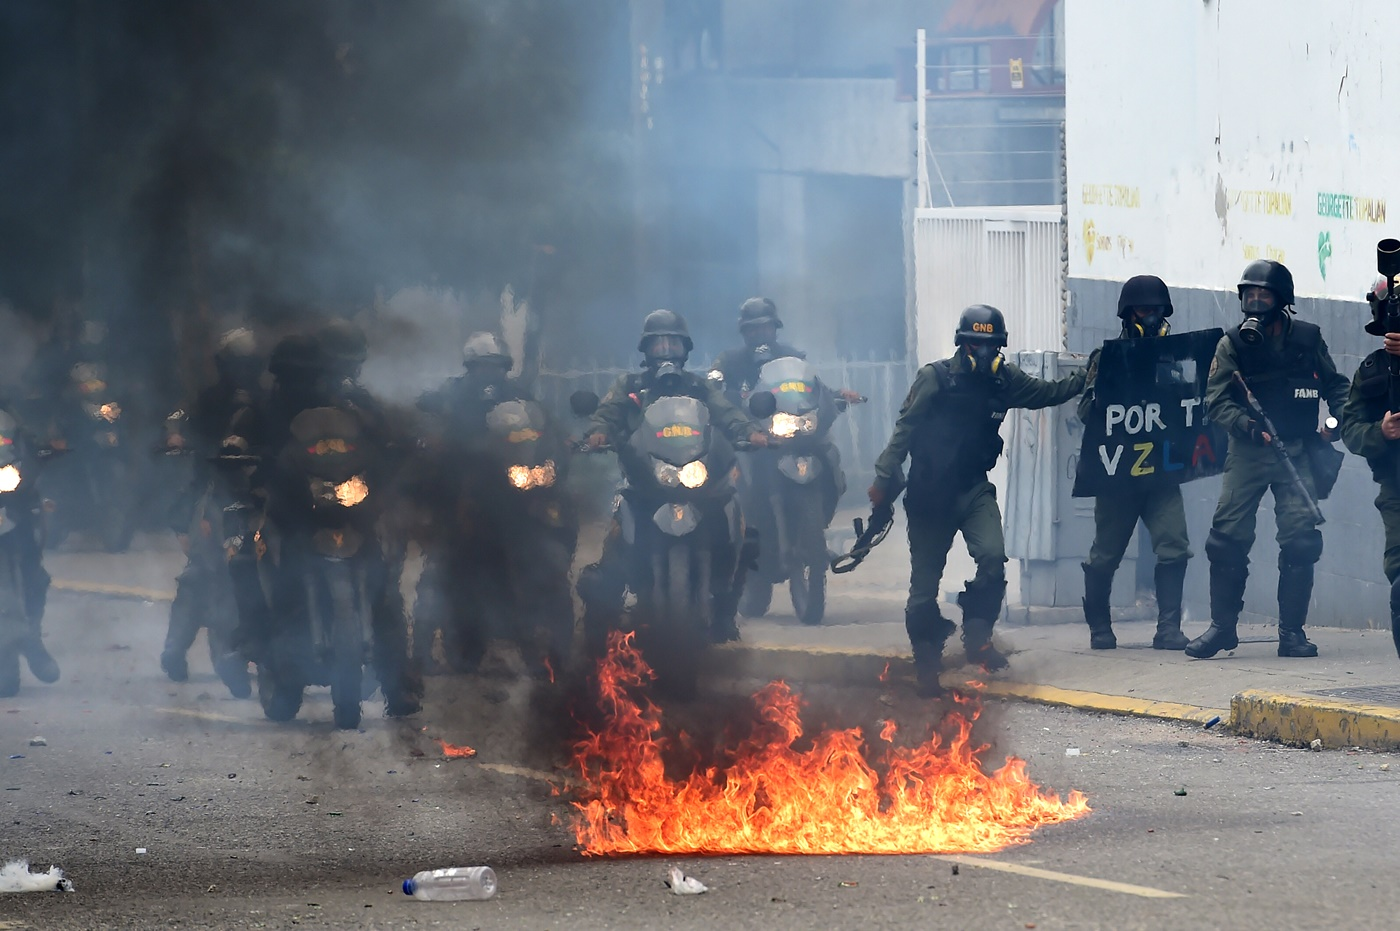 Venezuelan National Guard personnel in riot gear clash with opposition demonstrators during a protest against Venezuelan President Nicolas Maduro, in Caracas on May 3, 2017. Venezuela's angry opposition rallied Wednesday vowing huge street protests against President Nicolas Maduro's plan to rewrite the constitution and accusing him of dodging elections to cling to power despite deadly unrest. / AFP PHOTO / RONALDO SCHEMIDT